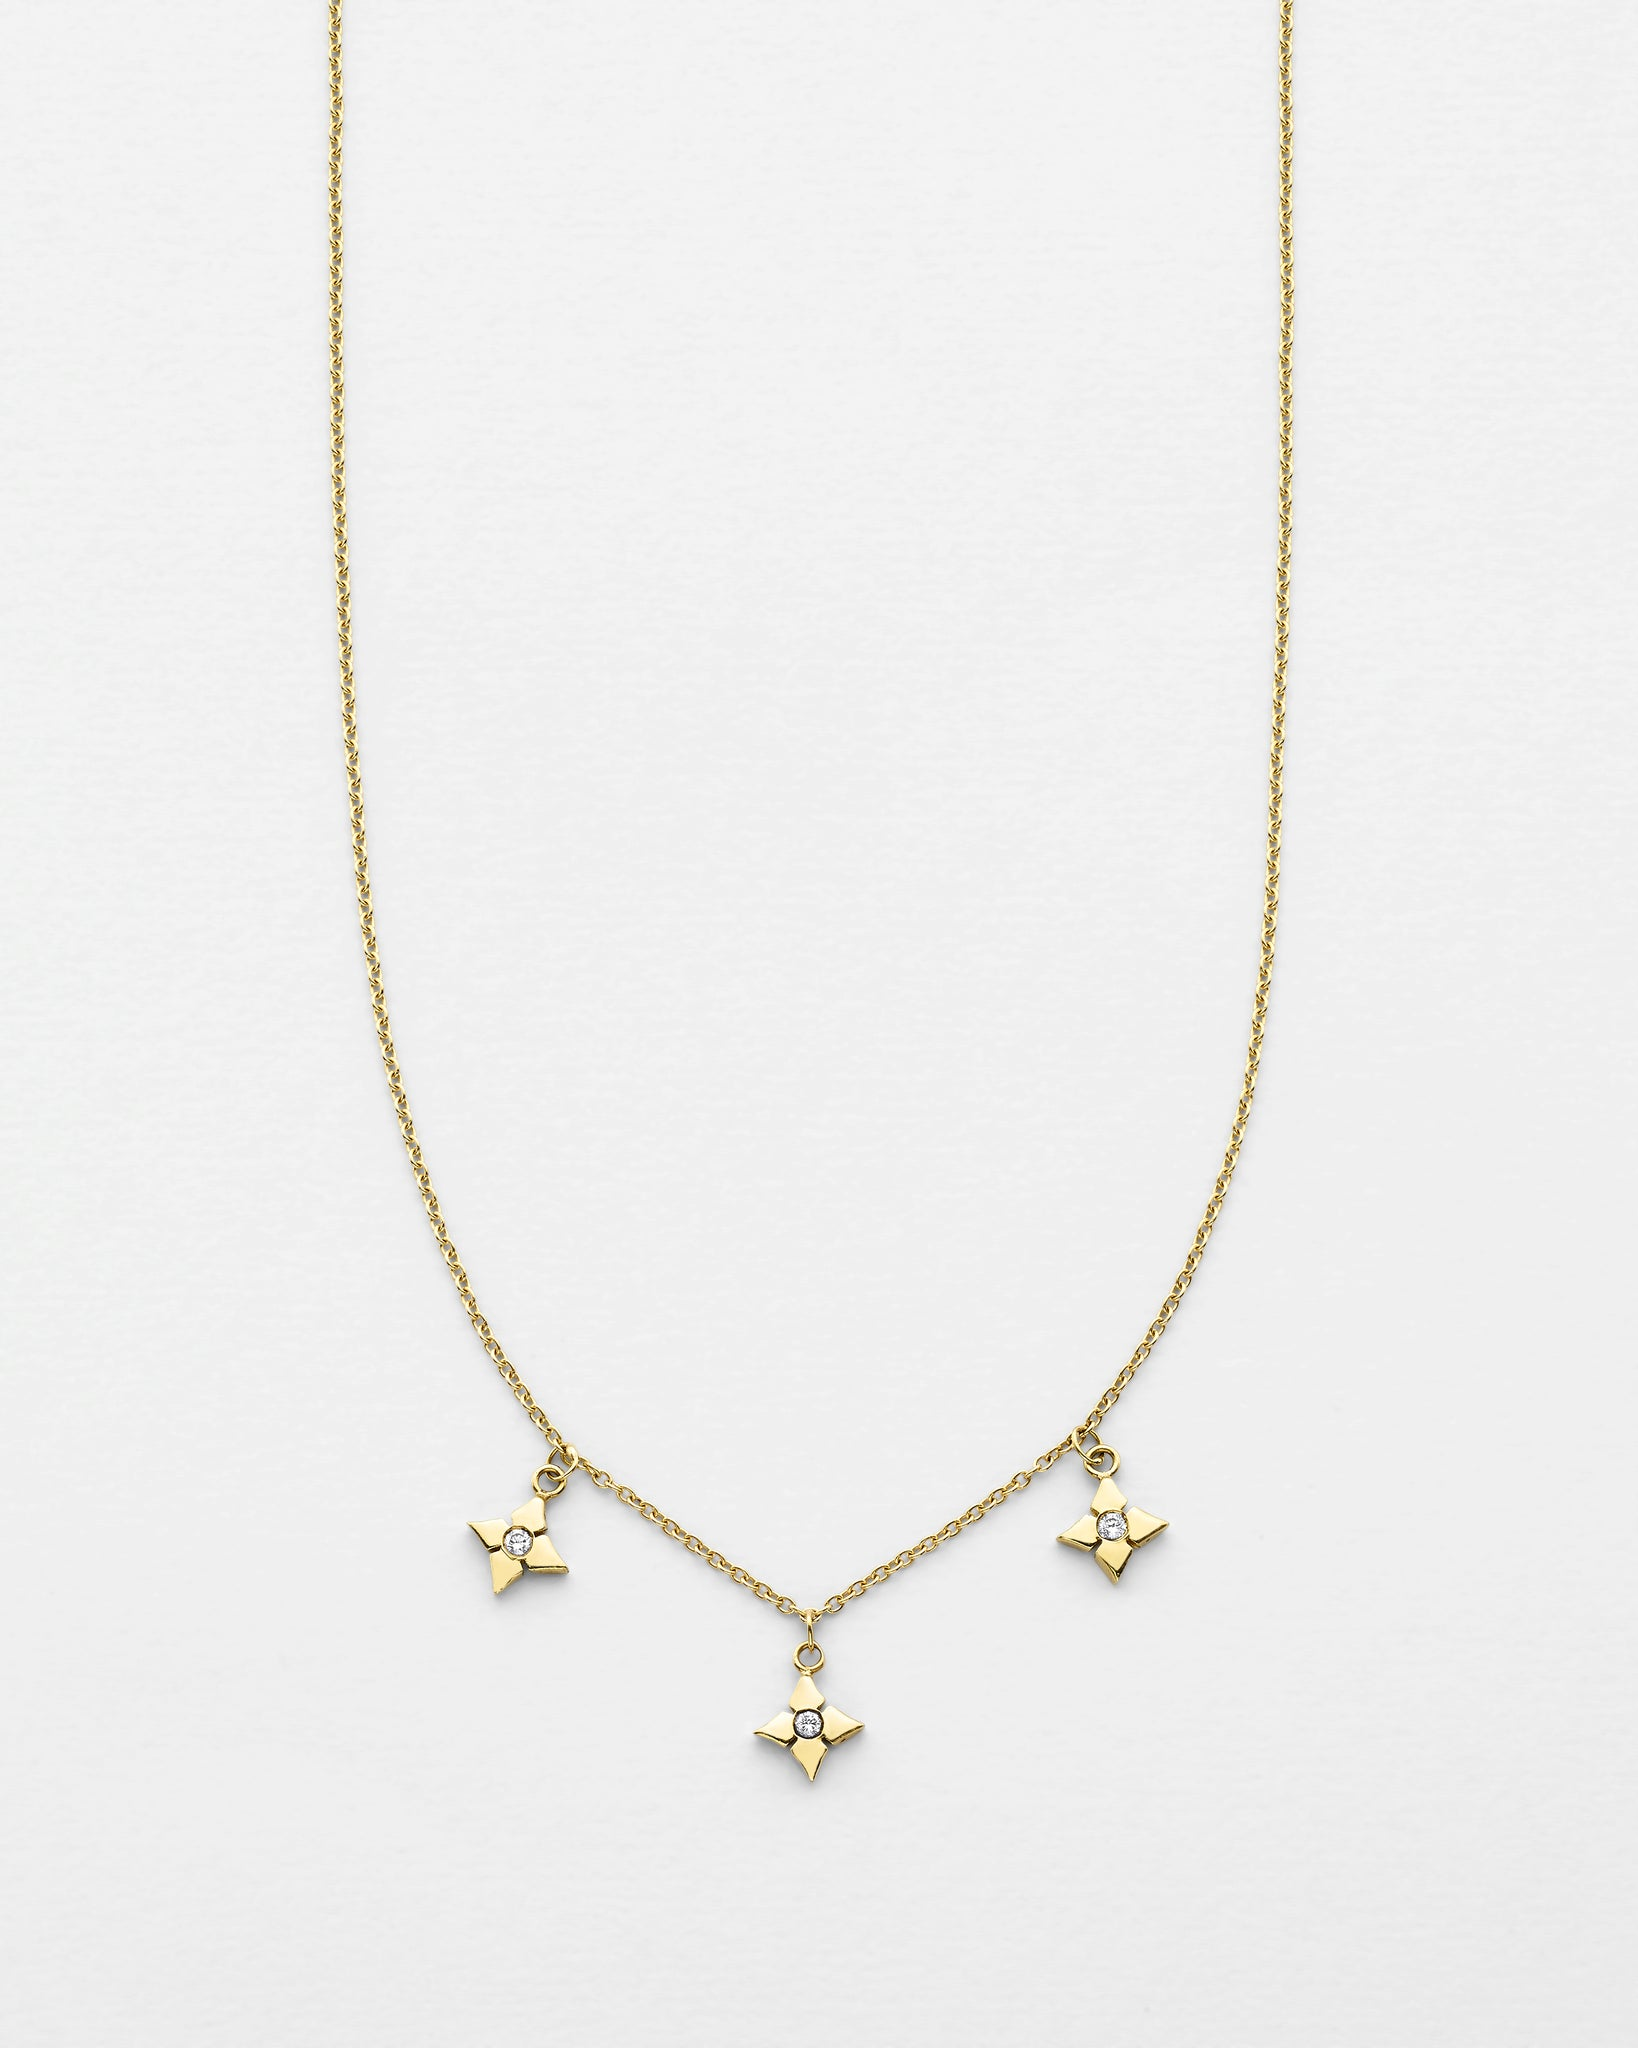 Chain Reaction Clover Trio Necklace